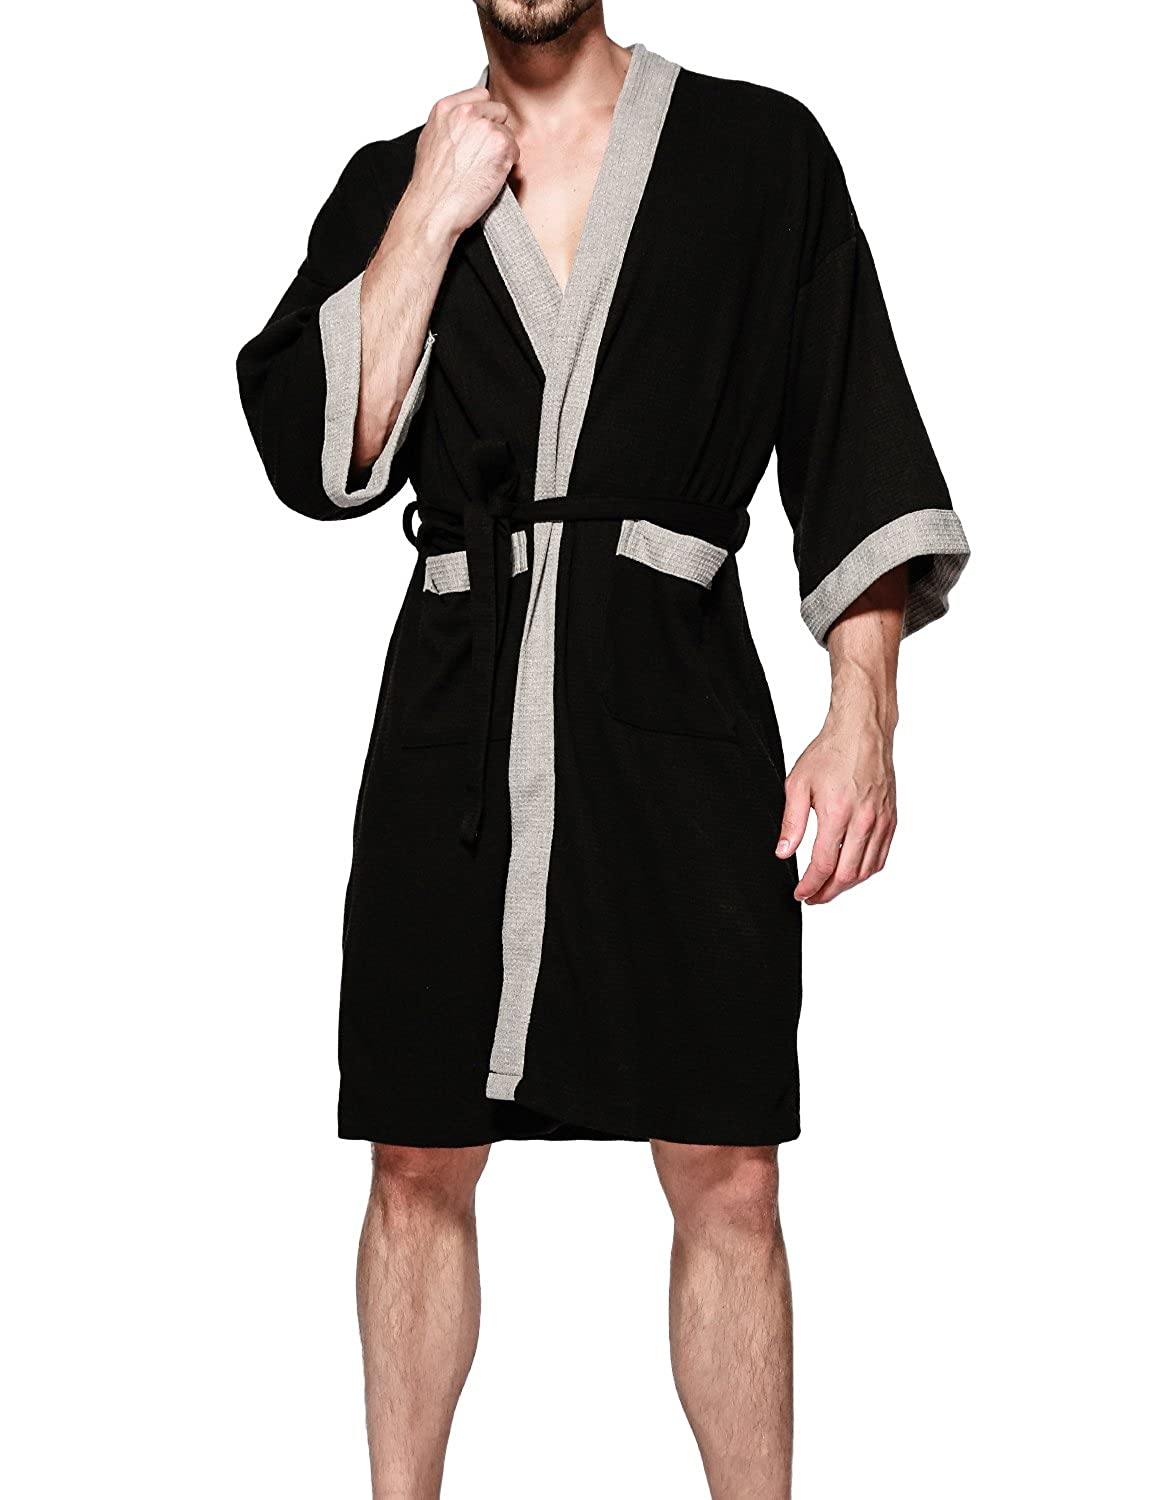 2ea656f3a4 Top1  Earlish Men s Kimono Robe Soft Cotton Knit Waffle Weave Knee Length  Spa Robe. Wholesale Price 29.99 60%Cotton 40%Polyester Imported Tie closure